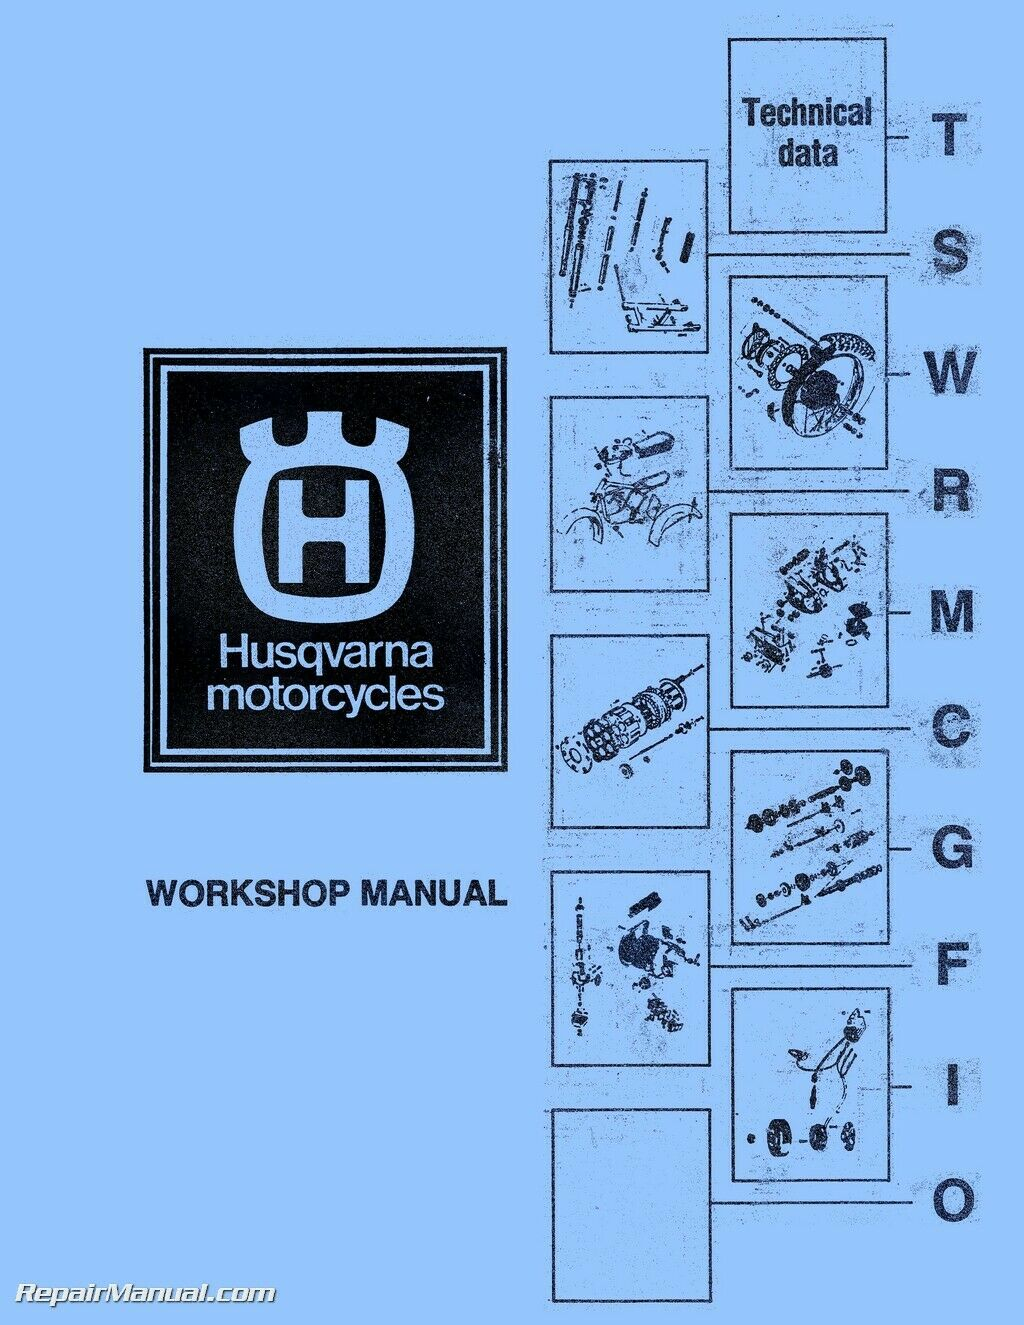 Husqvarna CR WR RT Motorcycle Manual 125 175 250 360 390 400 450 460cc  1973- 1 of 1Only 4 available ...